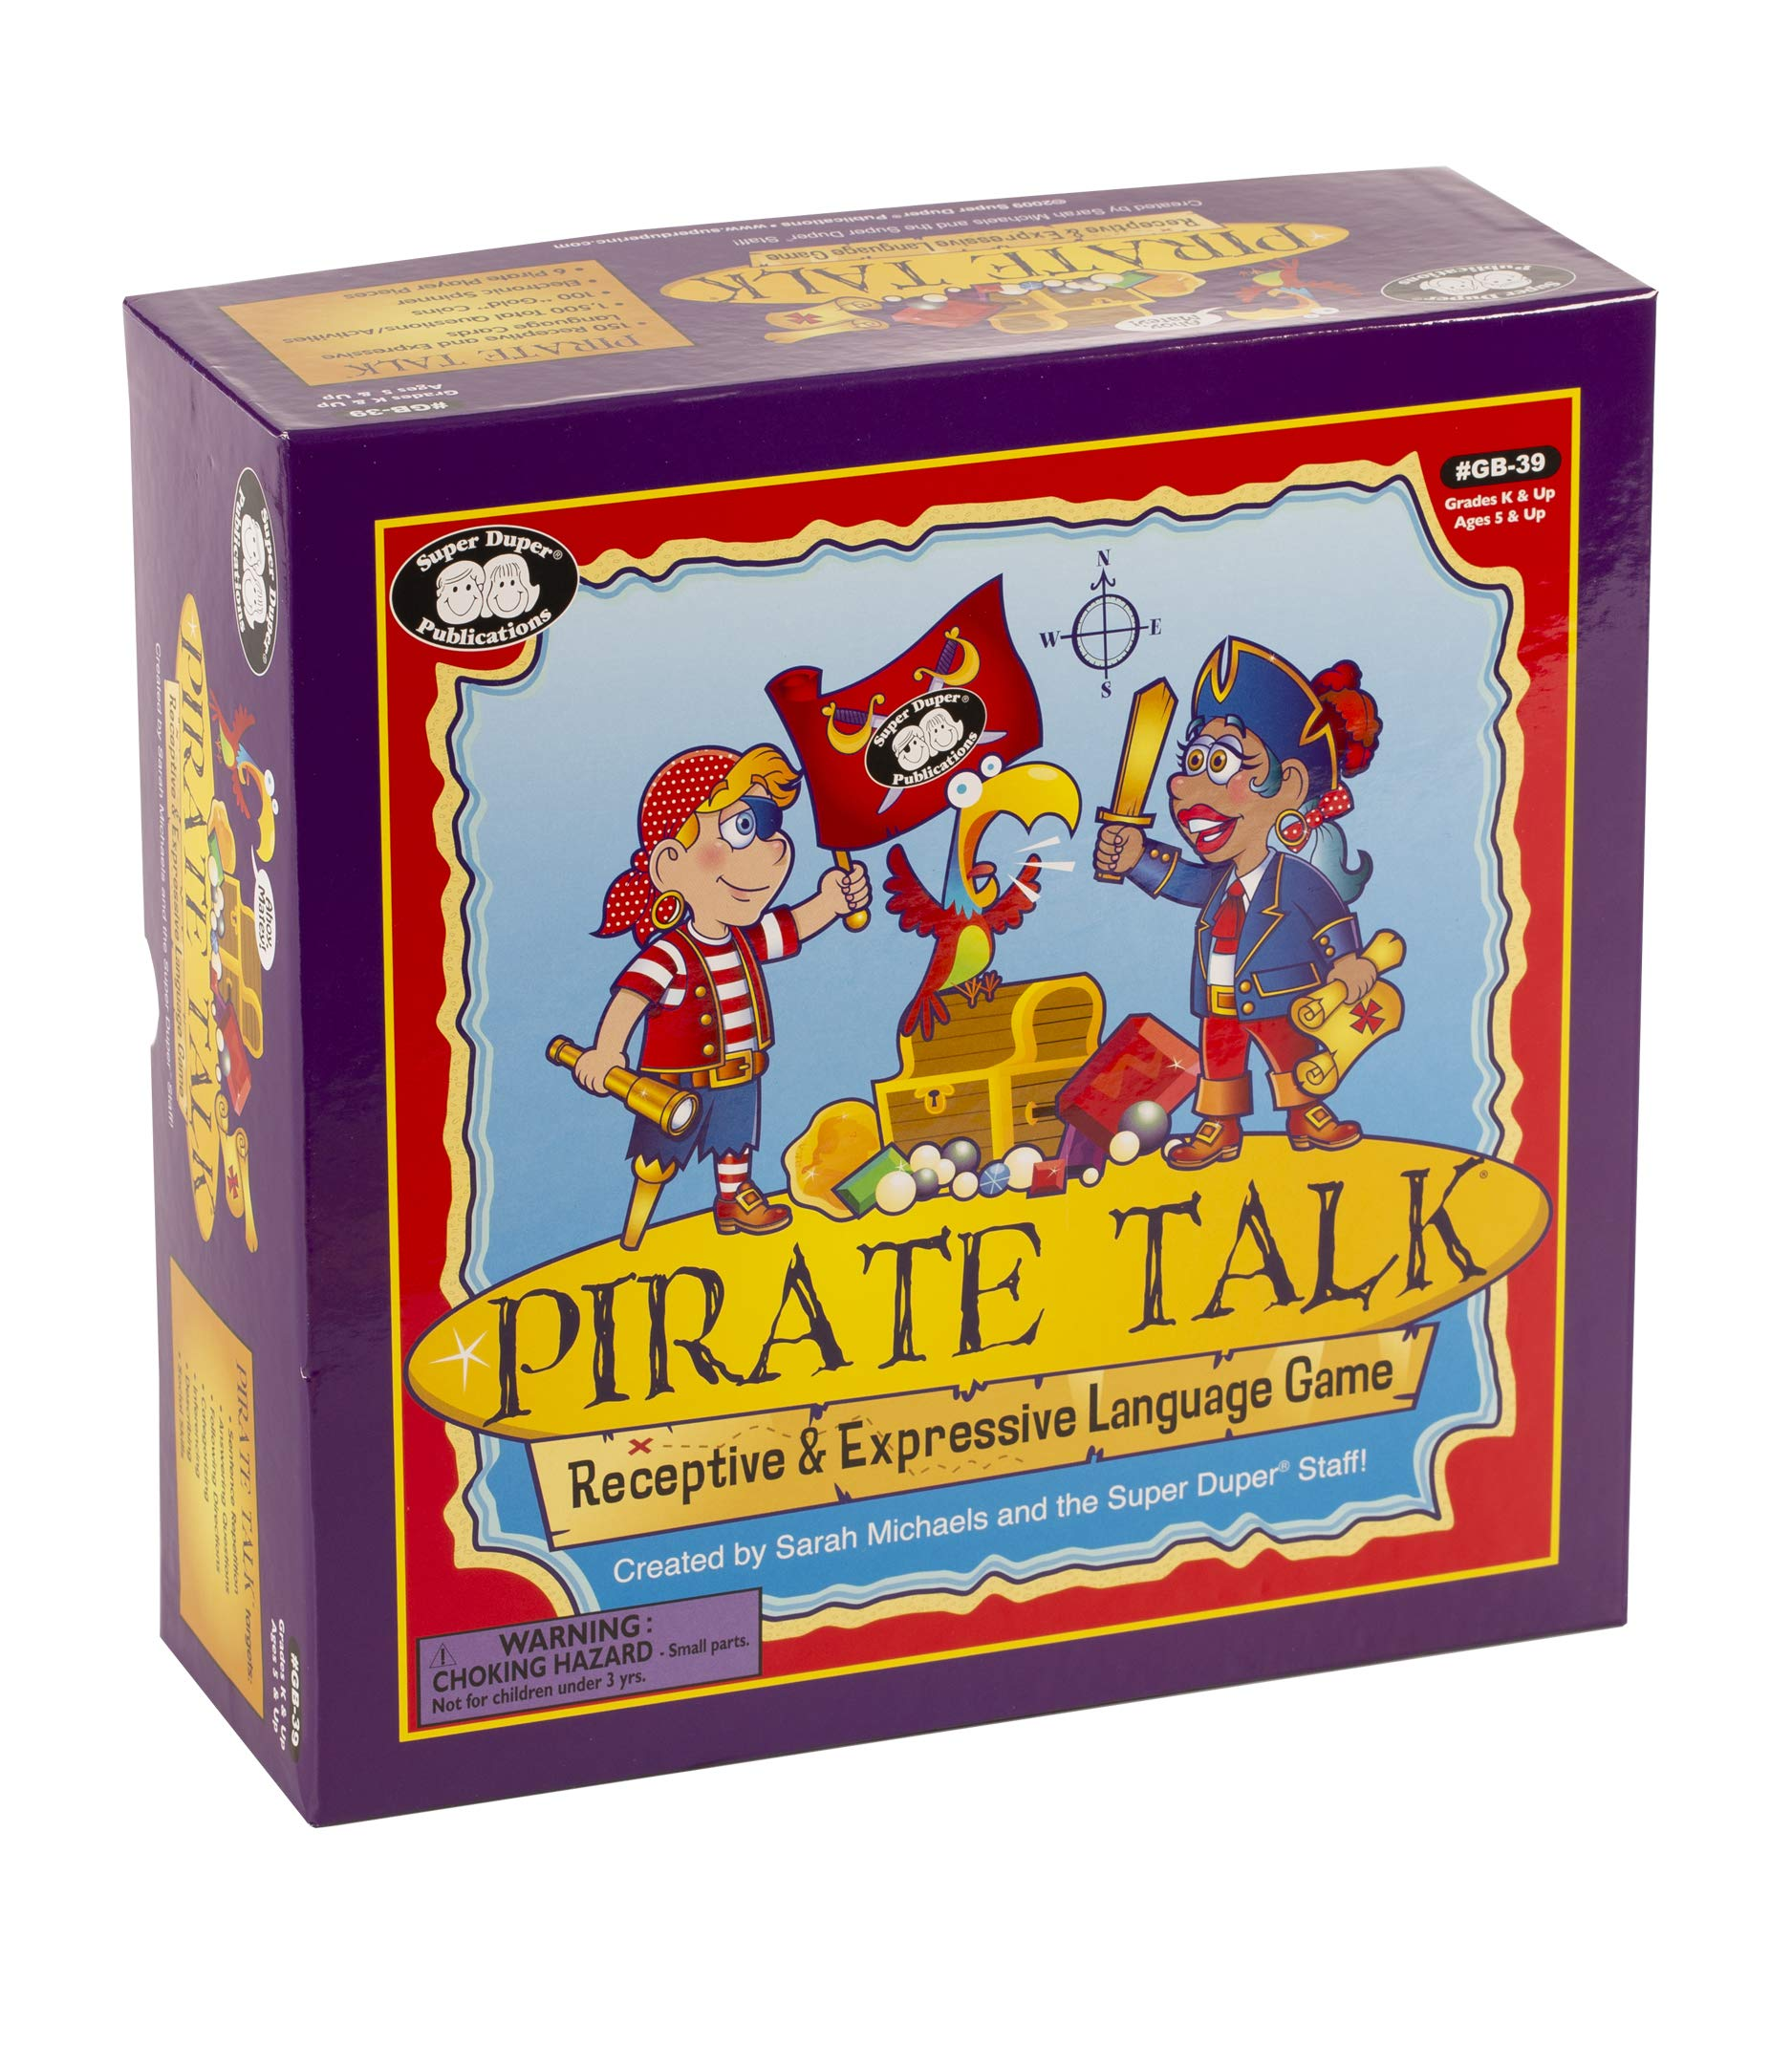 Super Duper Publications | Pirate Talk Receptive & Expressive Language Game | Communication & Social Skills | Educational Learning Materials for Children